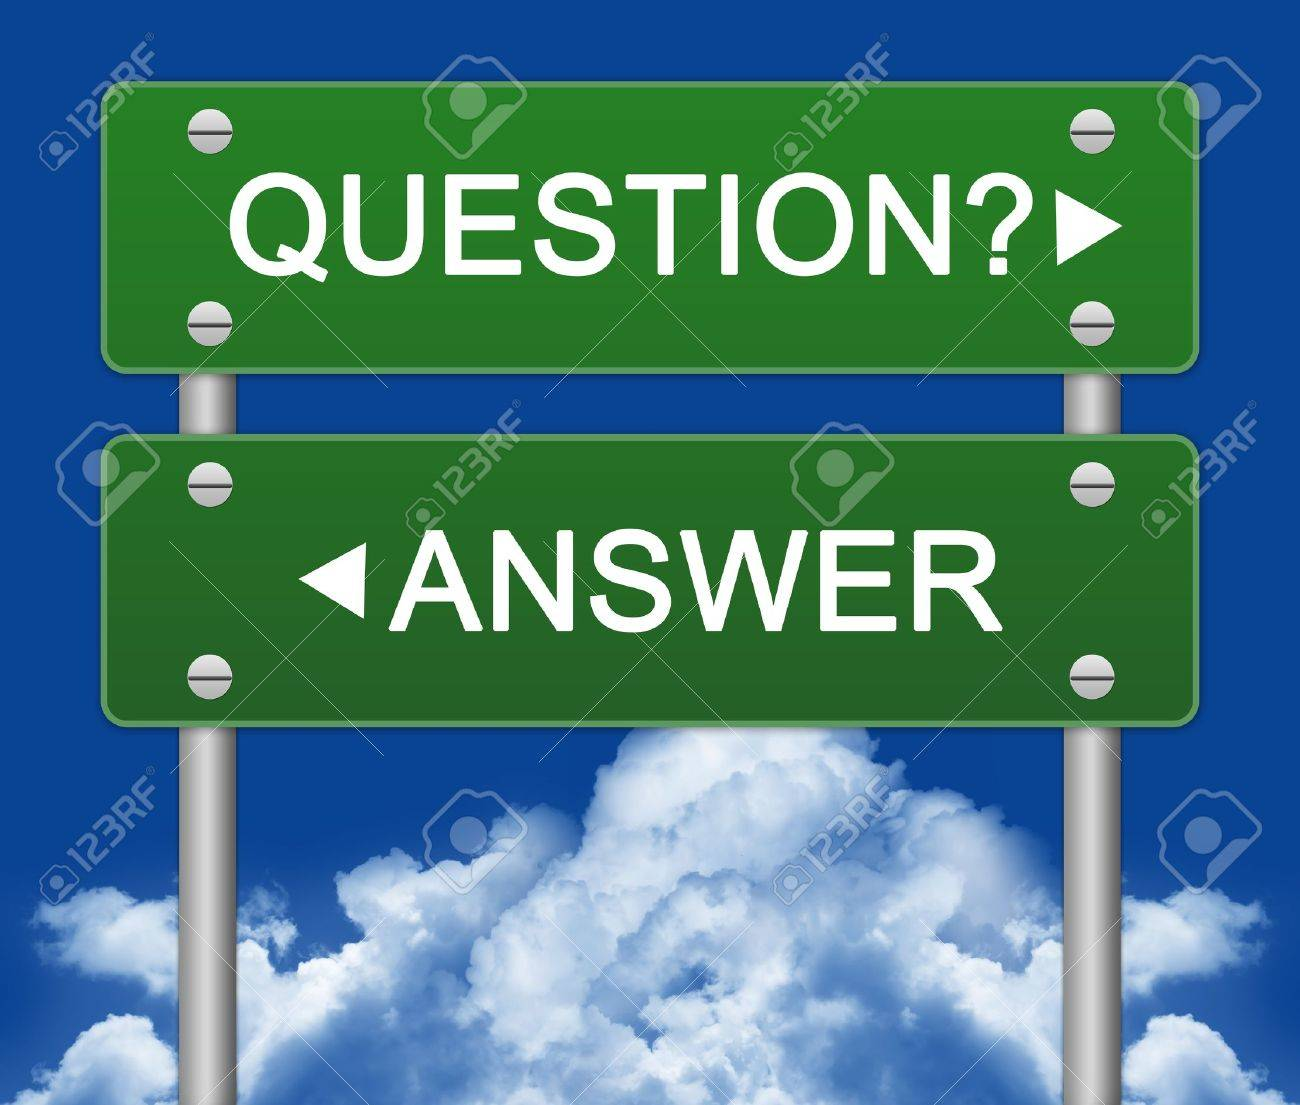 Question or Answer Street Sign With Blue Sky Background - 14768323